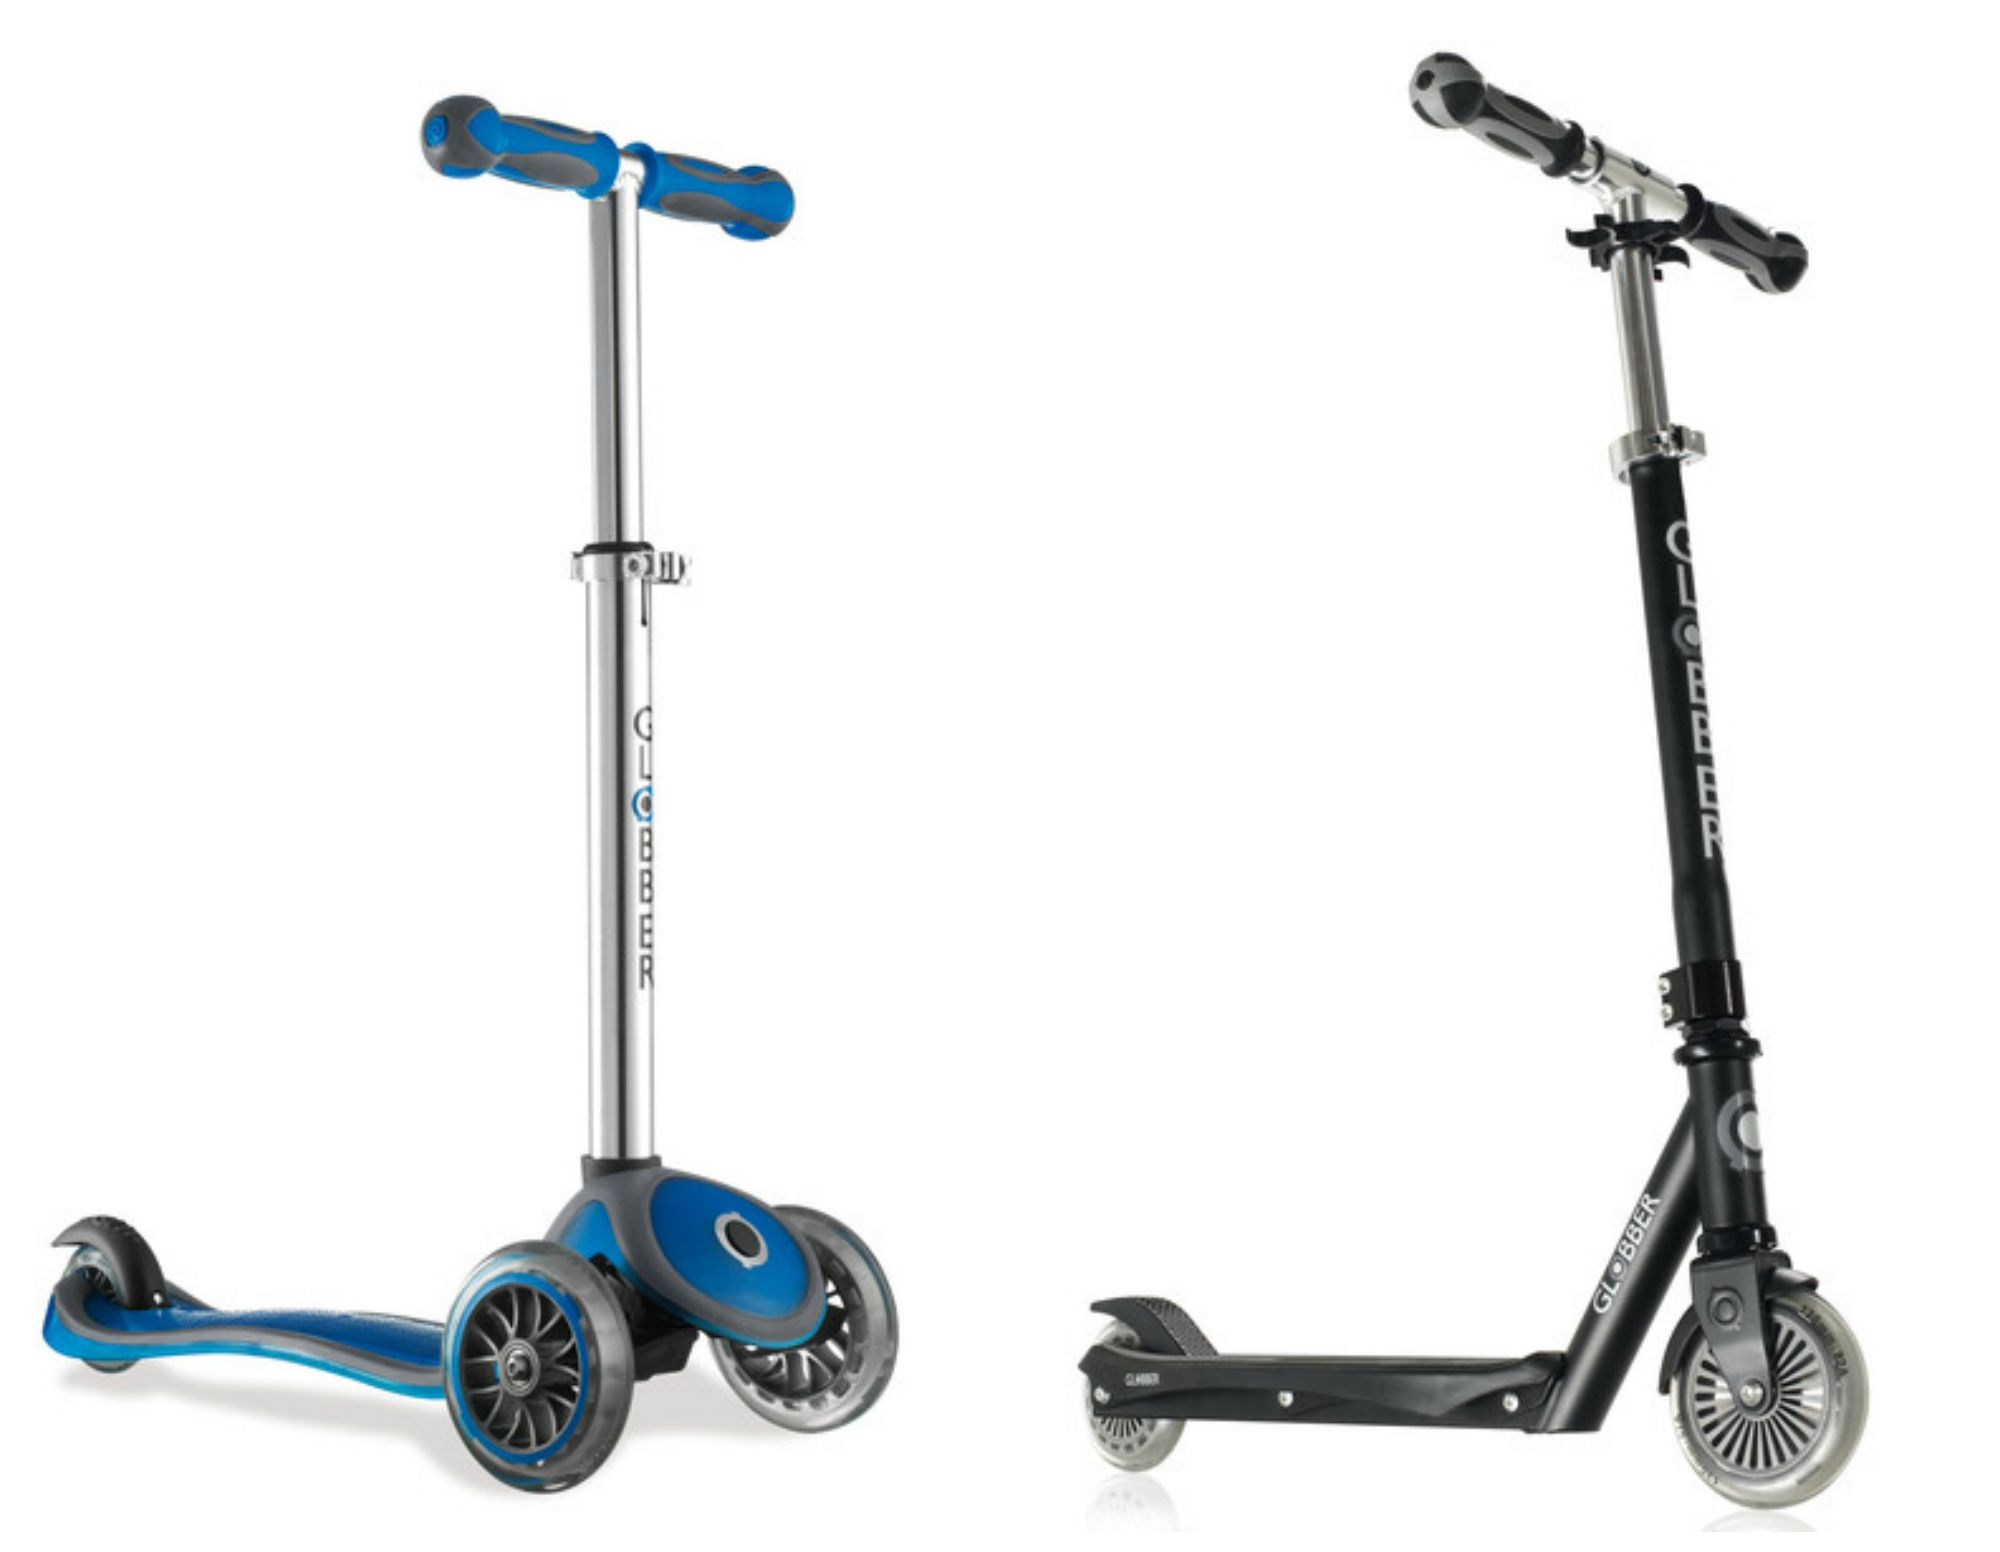 Scooter Choices